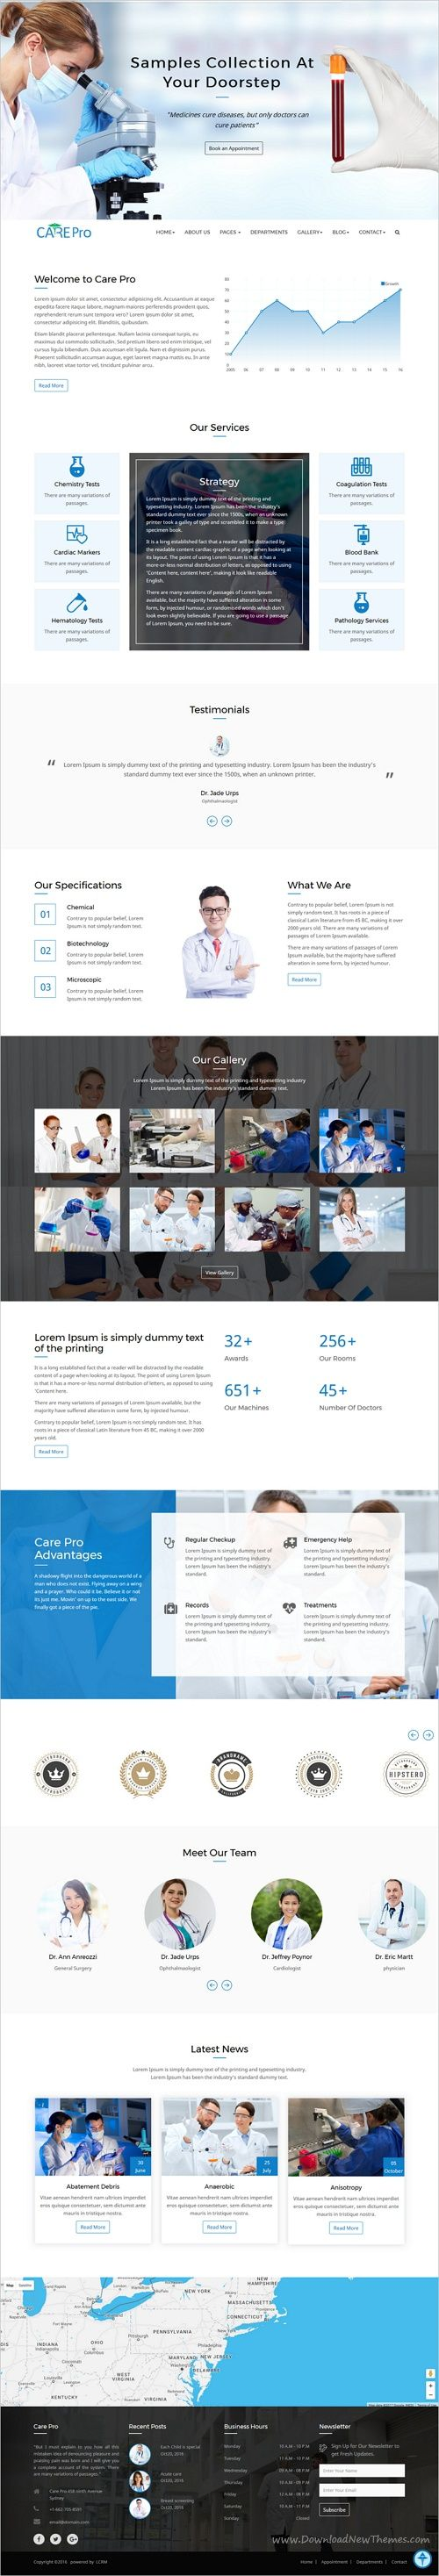 Care pro is a modern design HTML Bootstrap theme for #webdesign #medical, small #clinics like Gynecology, Cardiology, dental hospitals website with 6 different homepage layouts download now➩ https://themeforest.net/item/care-pro-medical-template/19253365?ref=Datasata